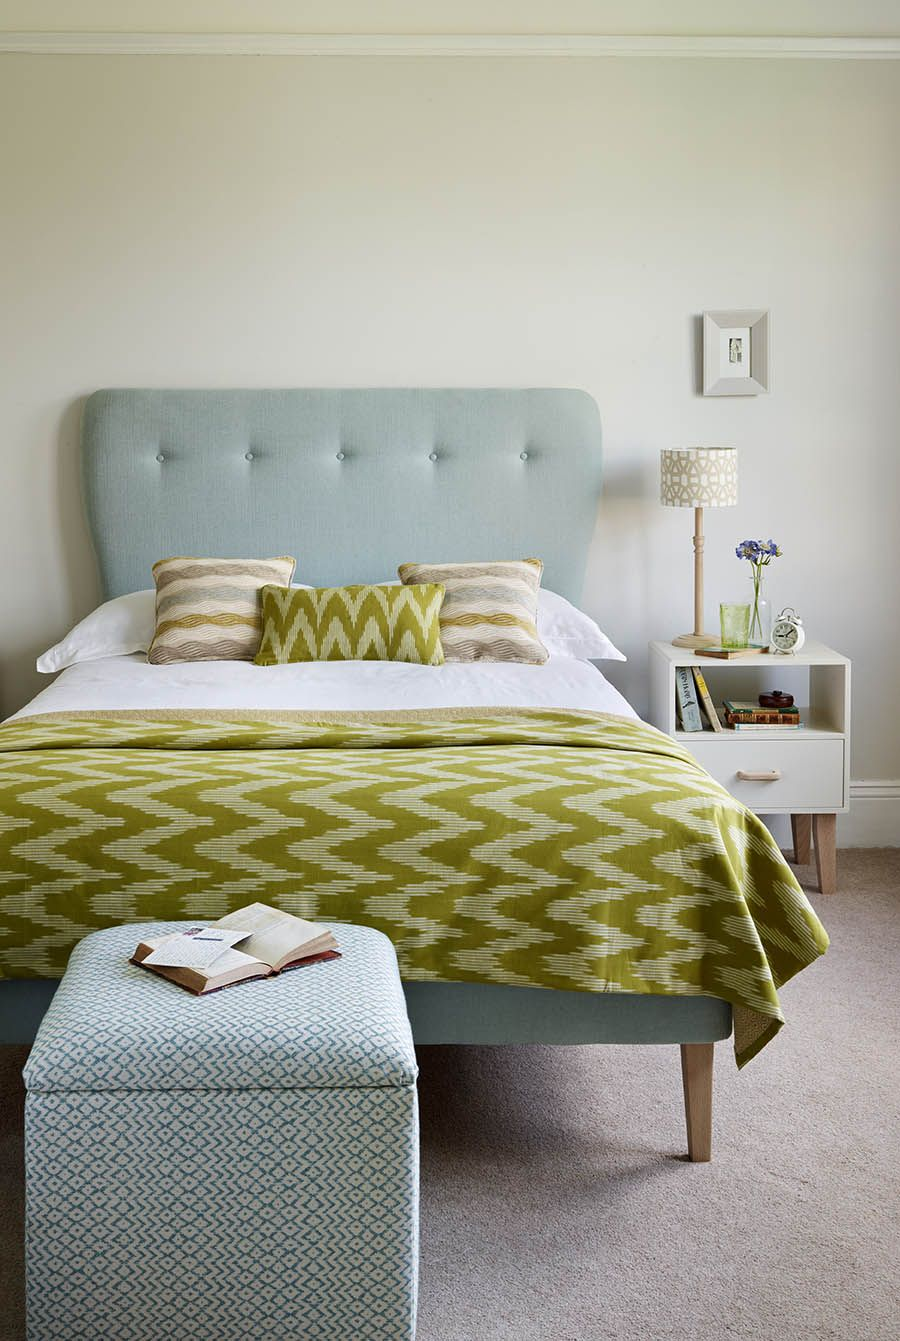 Master bedroom headboard ideas  Ideas from edormyhouse Our retro bed in pale blue looks